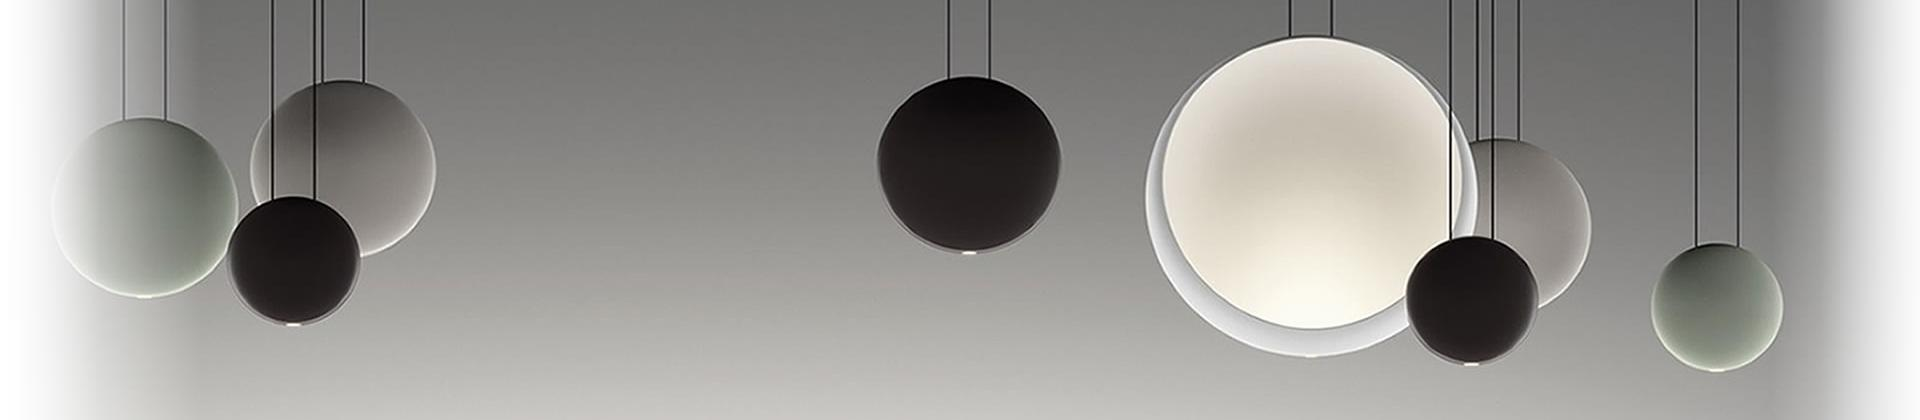 Big design lamps collection by Vibia